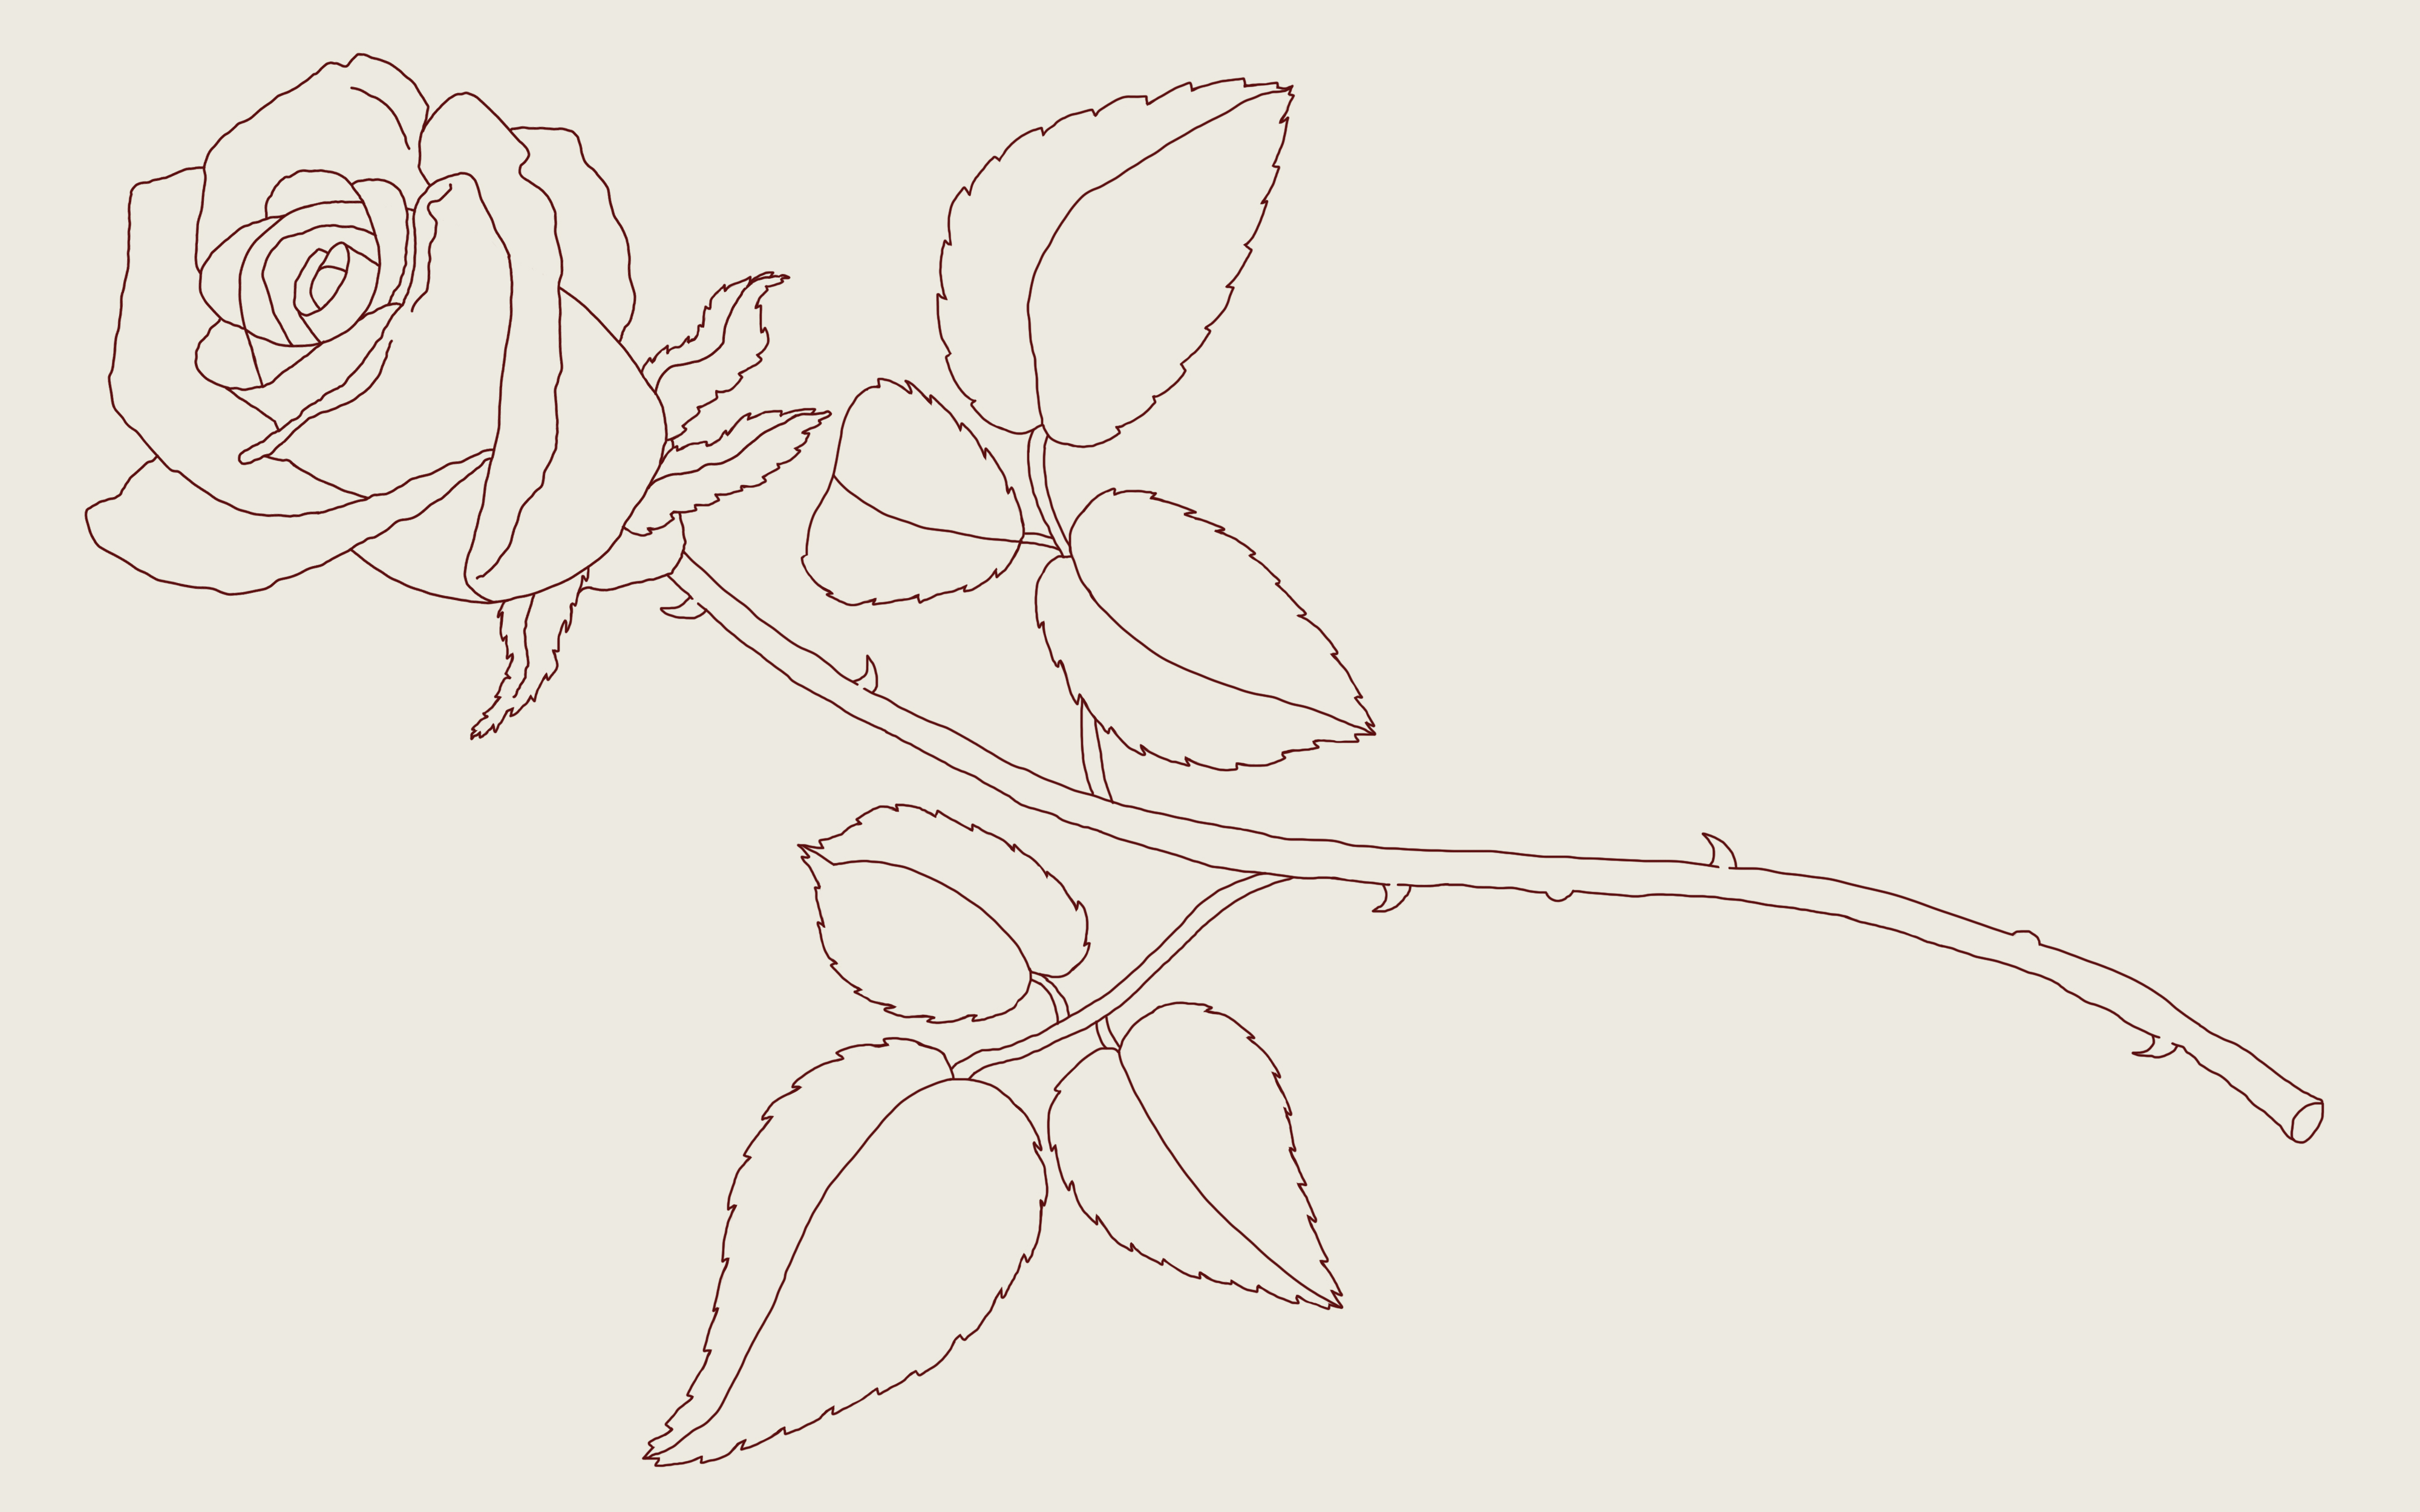 How To Draw A Rose A Step By Step Guide 2020 Updated Thought Catalog